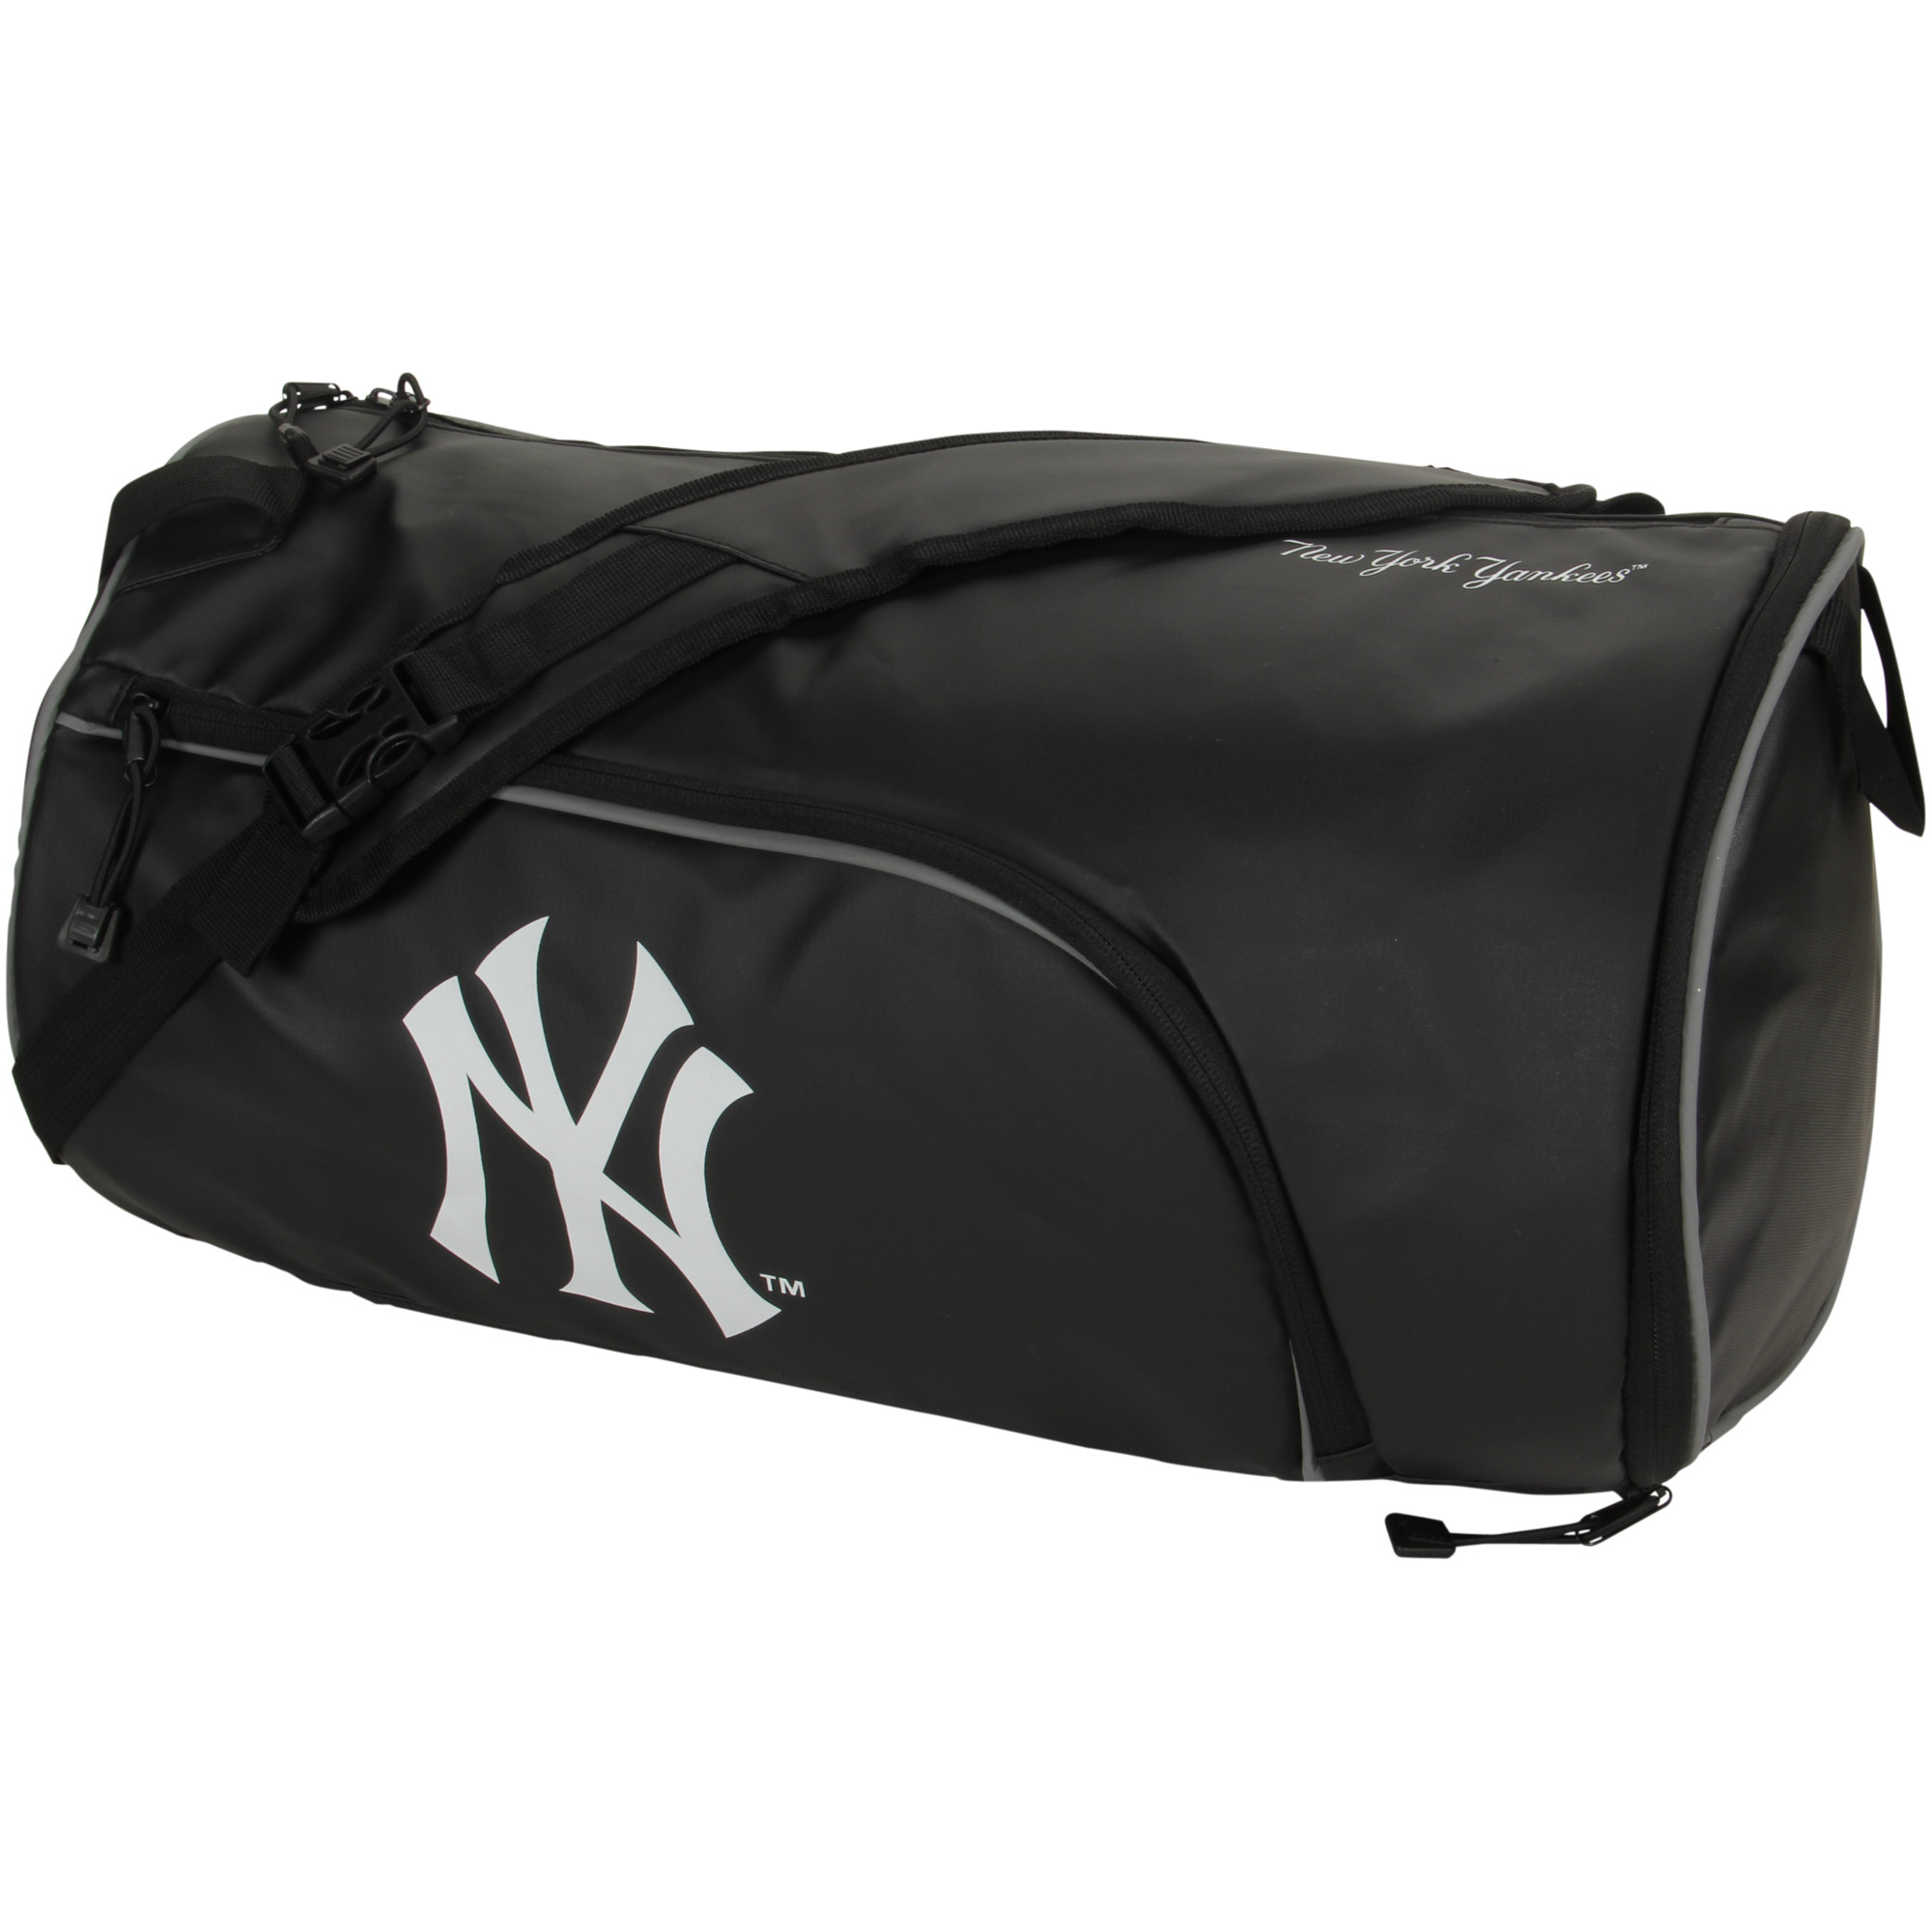 New York Yankees The Northwest Company Squadron Duffel Bag - Black - No Size